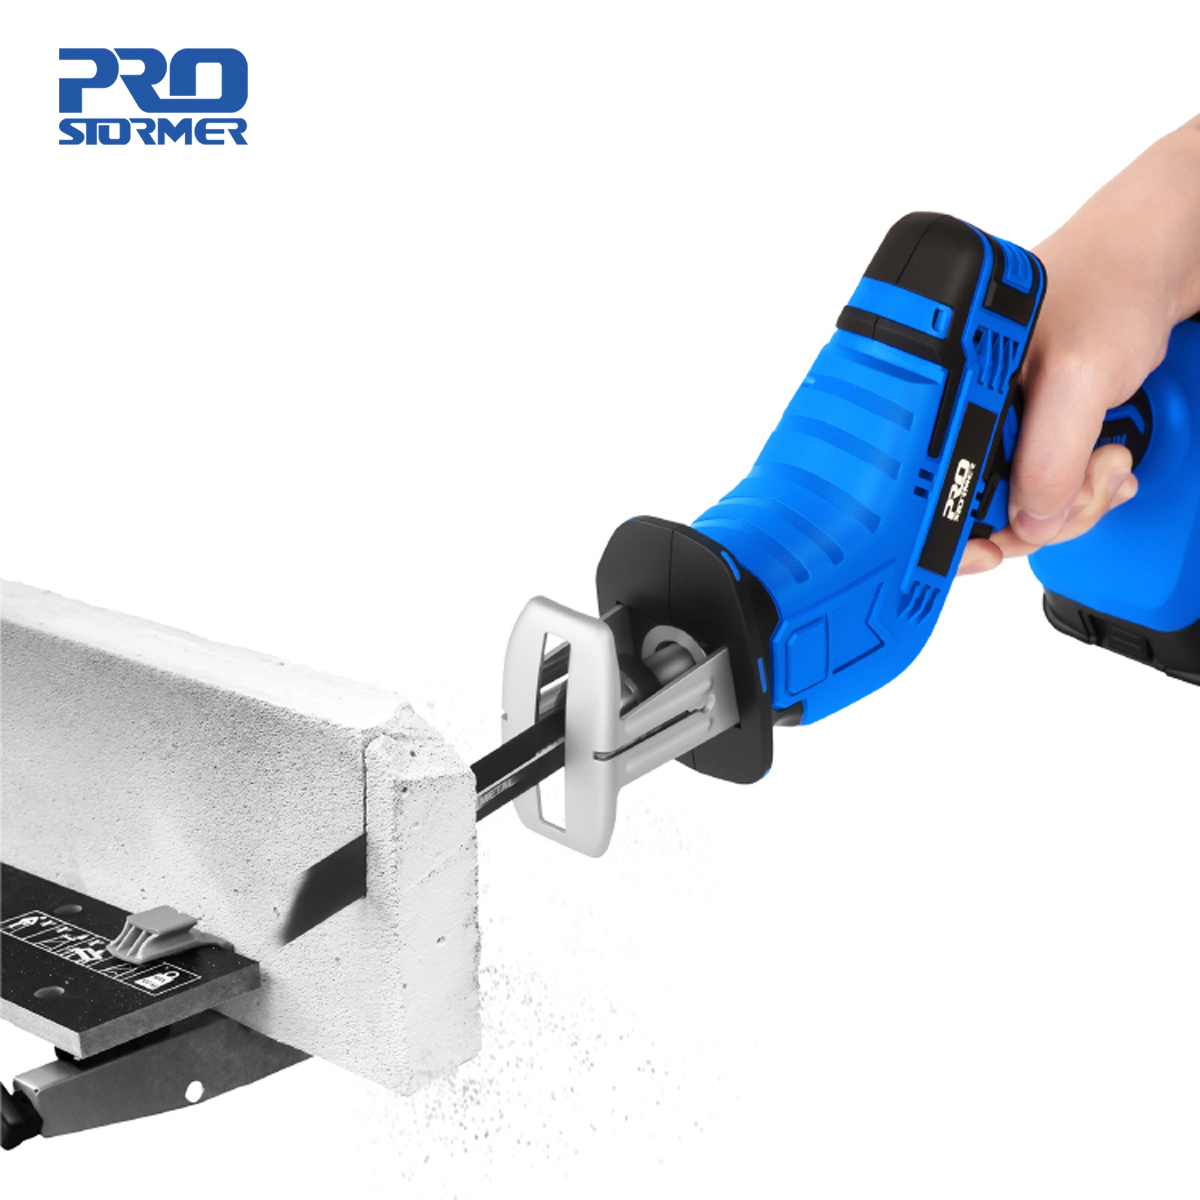 PROSTORMER Chain Wood DIY By Metal Reciprocating Cutting PVC Tool 21V Saw Saw Cordless Pipe Power